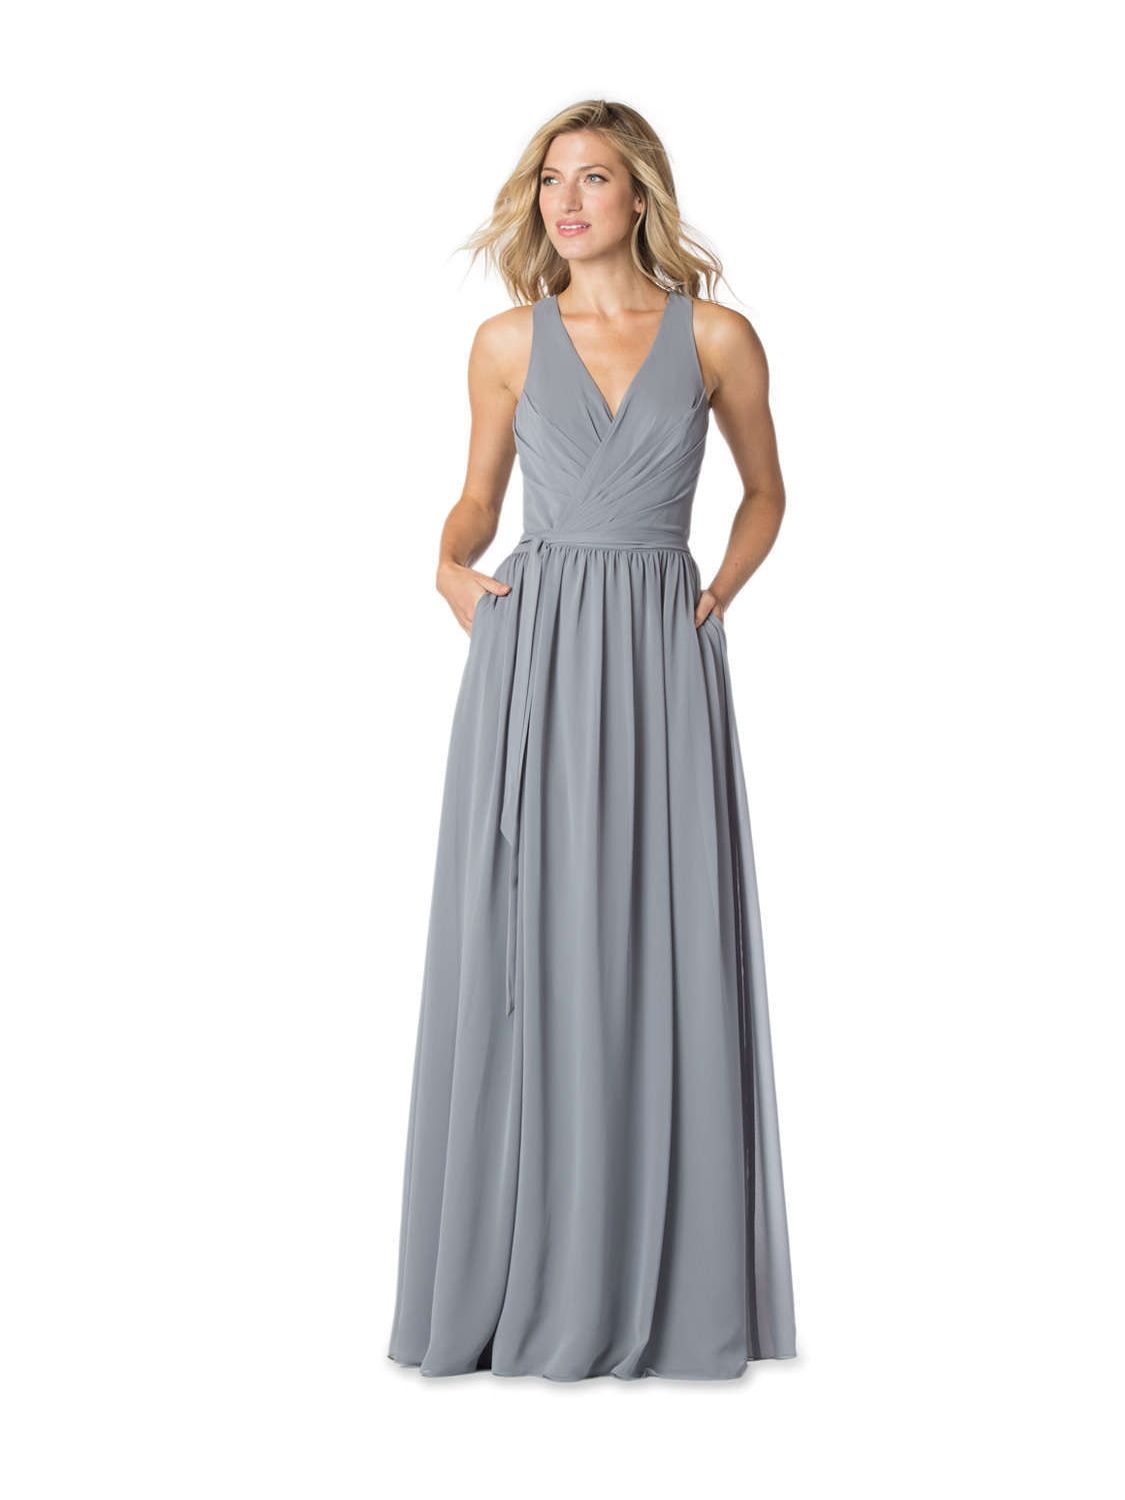 afc237cff3e Bari Jay - Bridesmaid Dress Style No.BC-1605-S